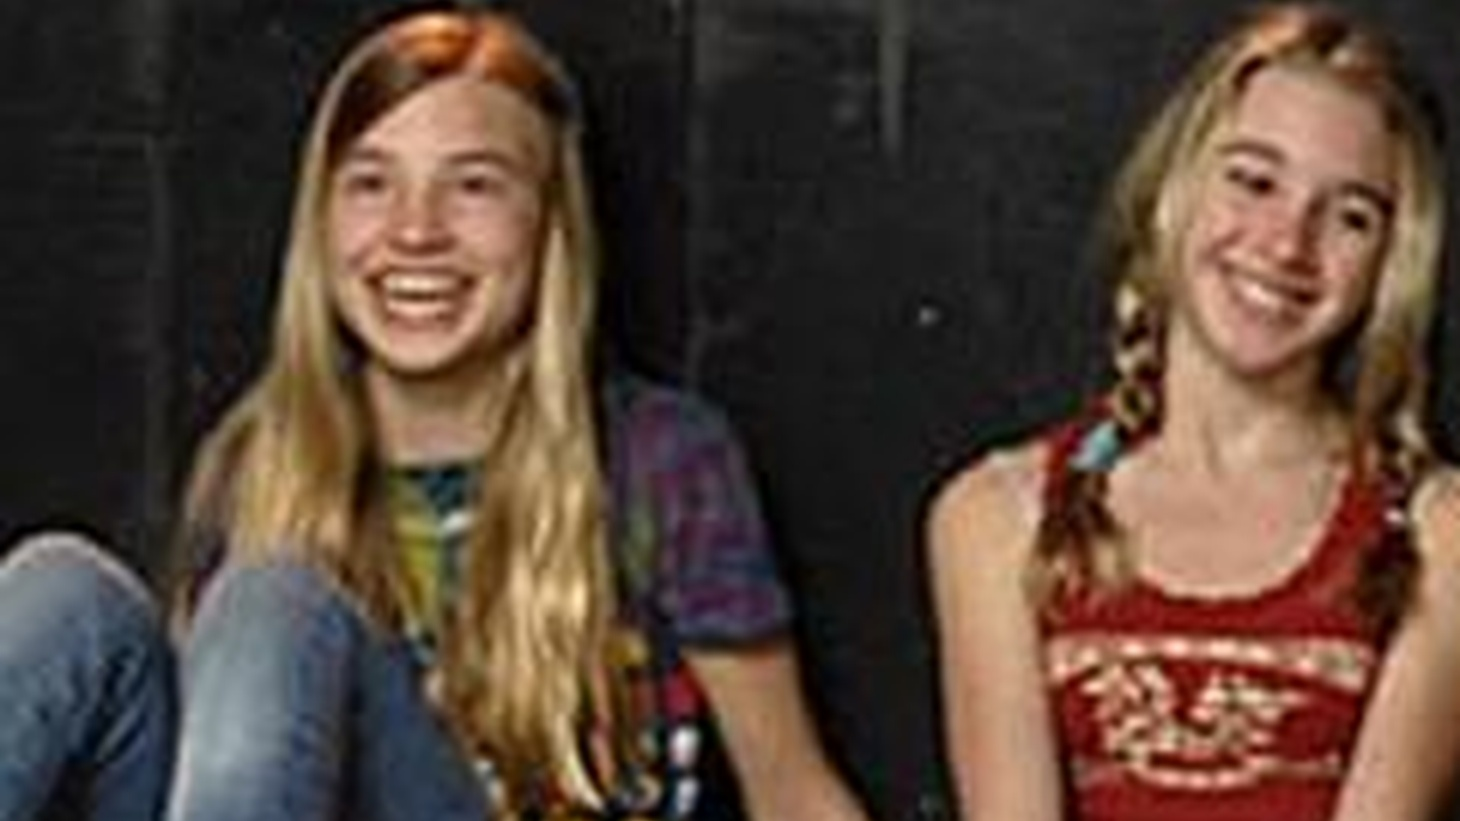 Teenage sister duo, Smoosh, return with new songs on Morning Becomes Eclectic.